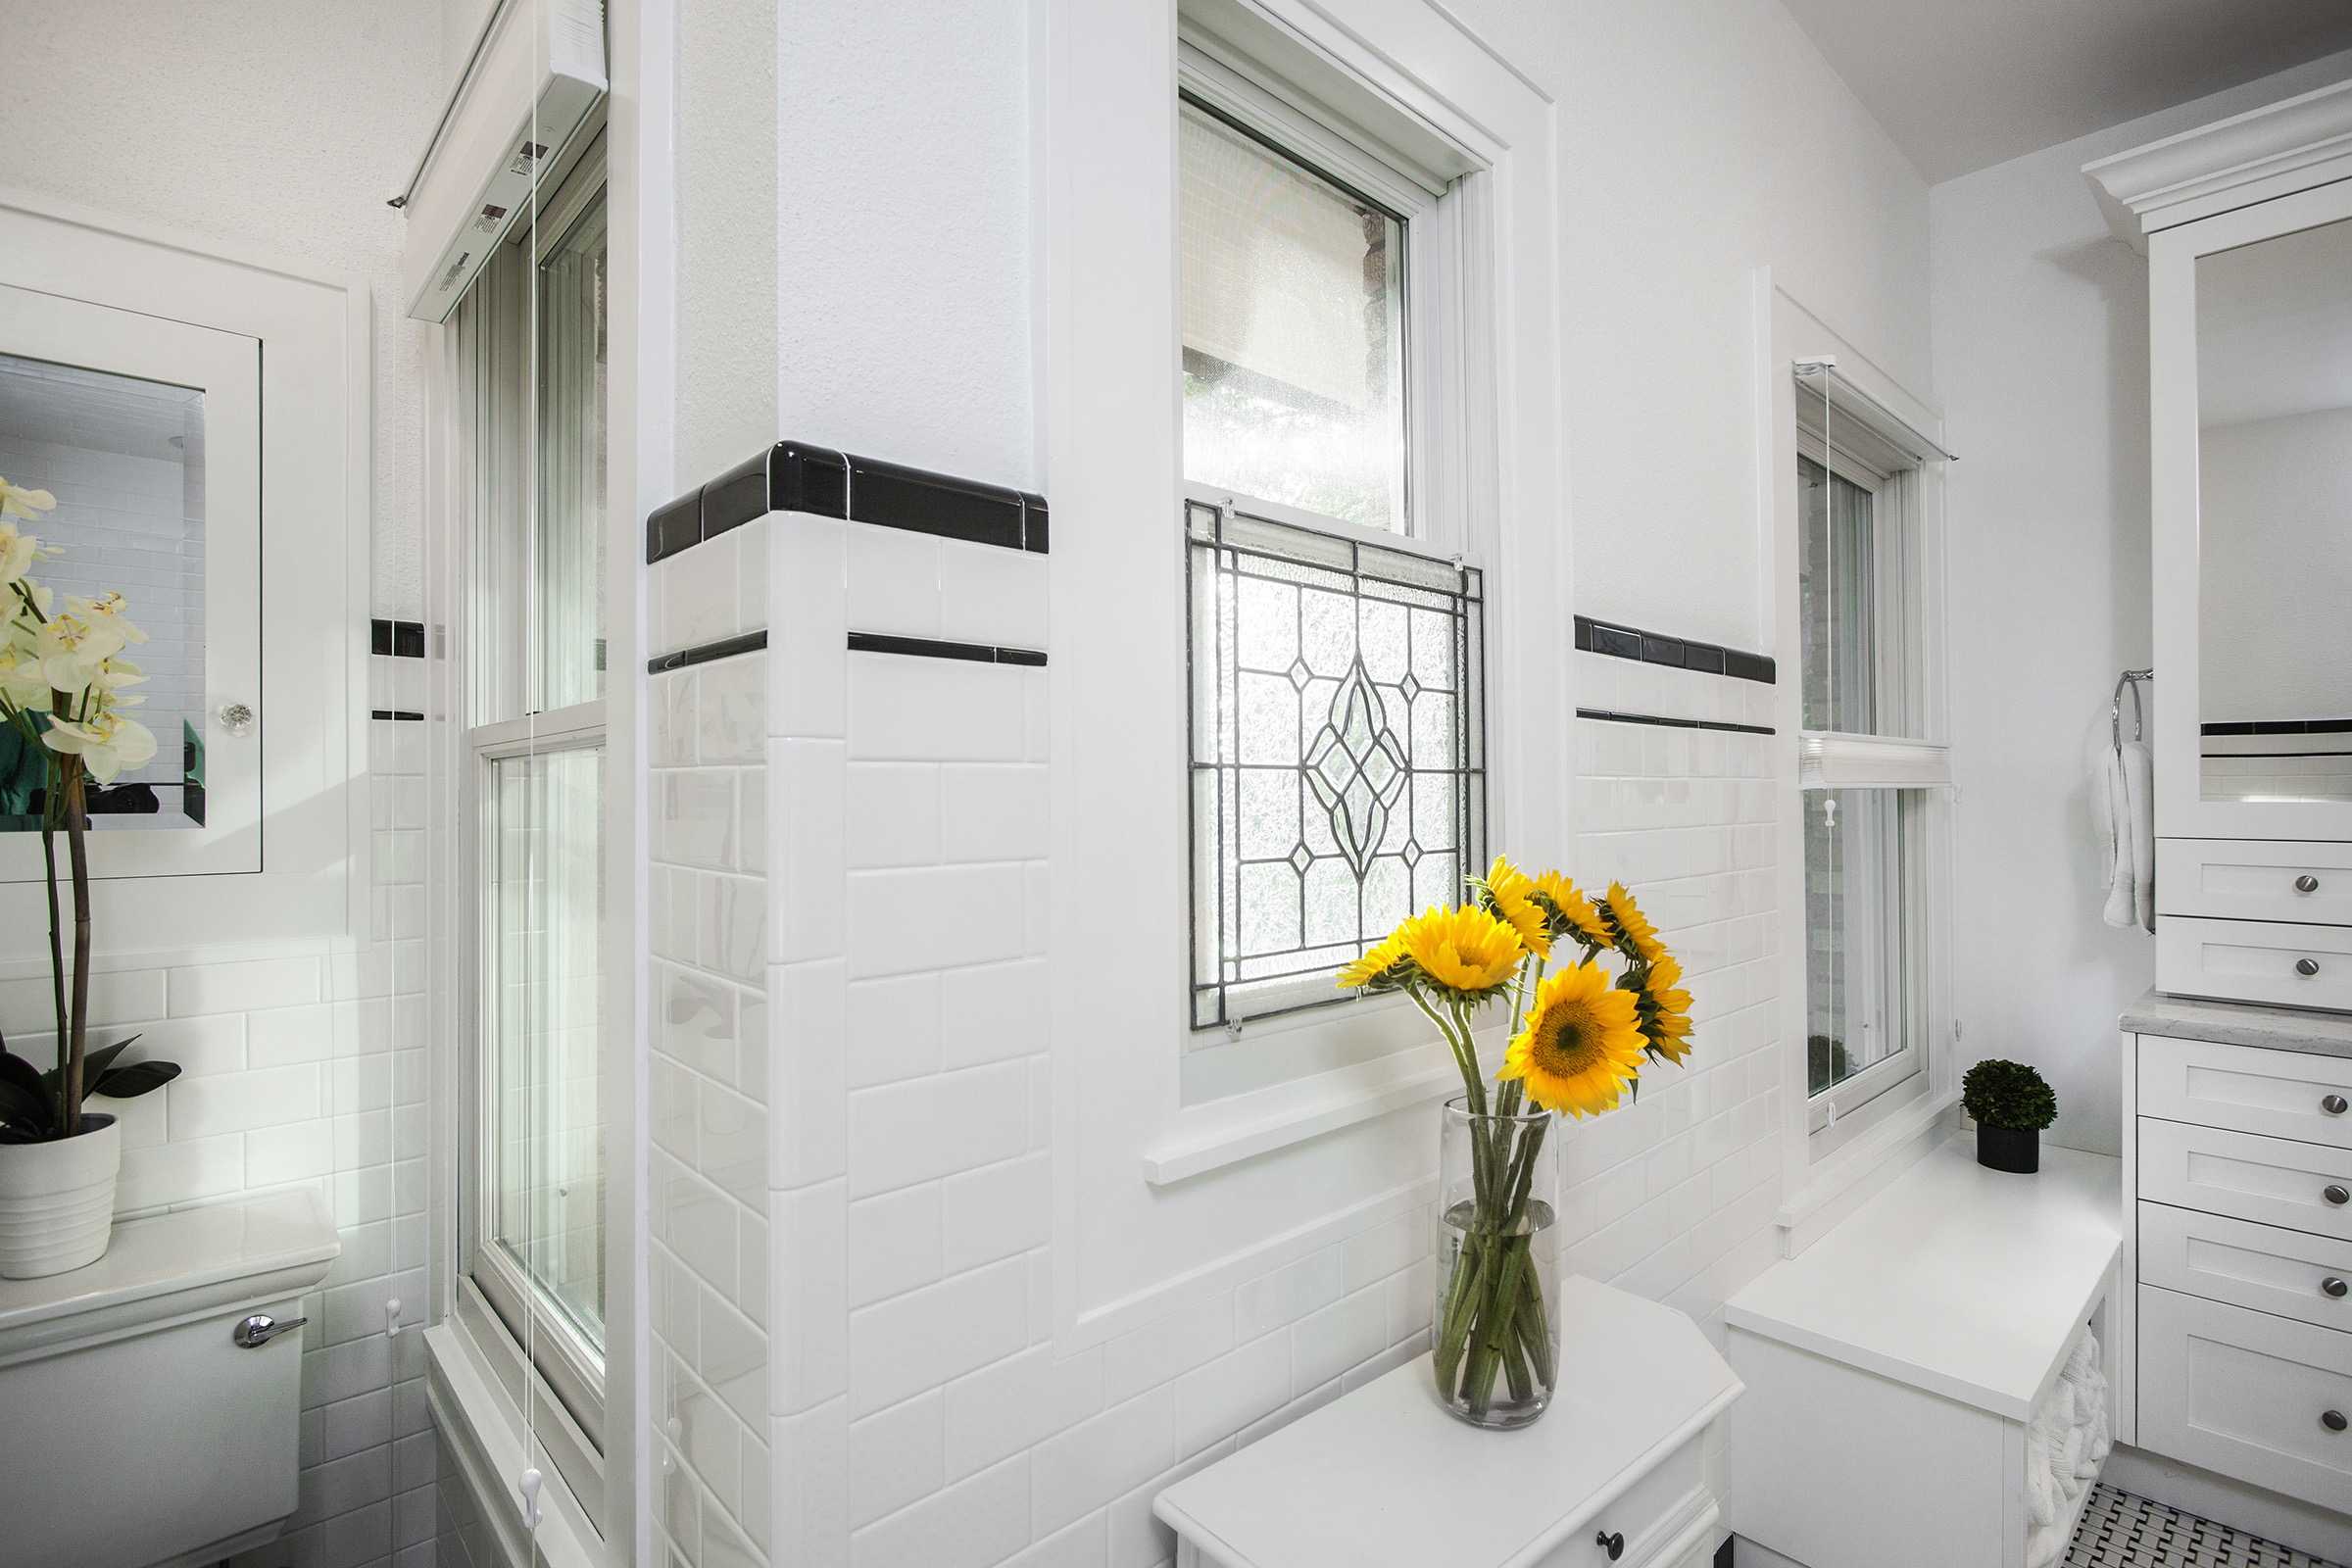 Accessories And Sunflowers For Modern Bathroom Decor (View 5 of 14)